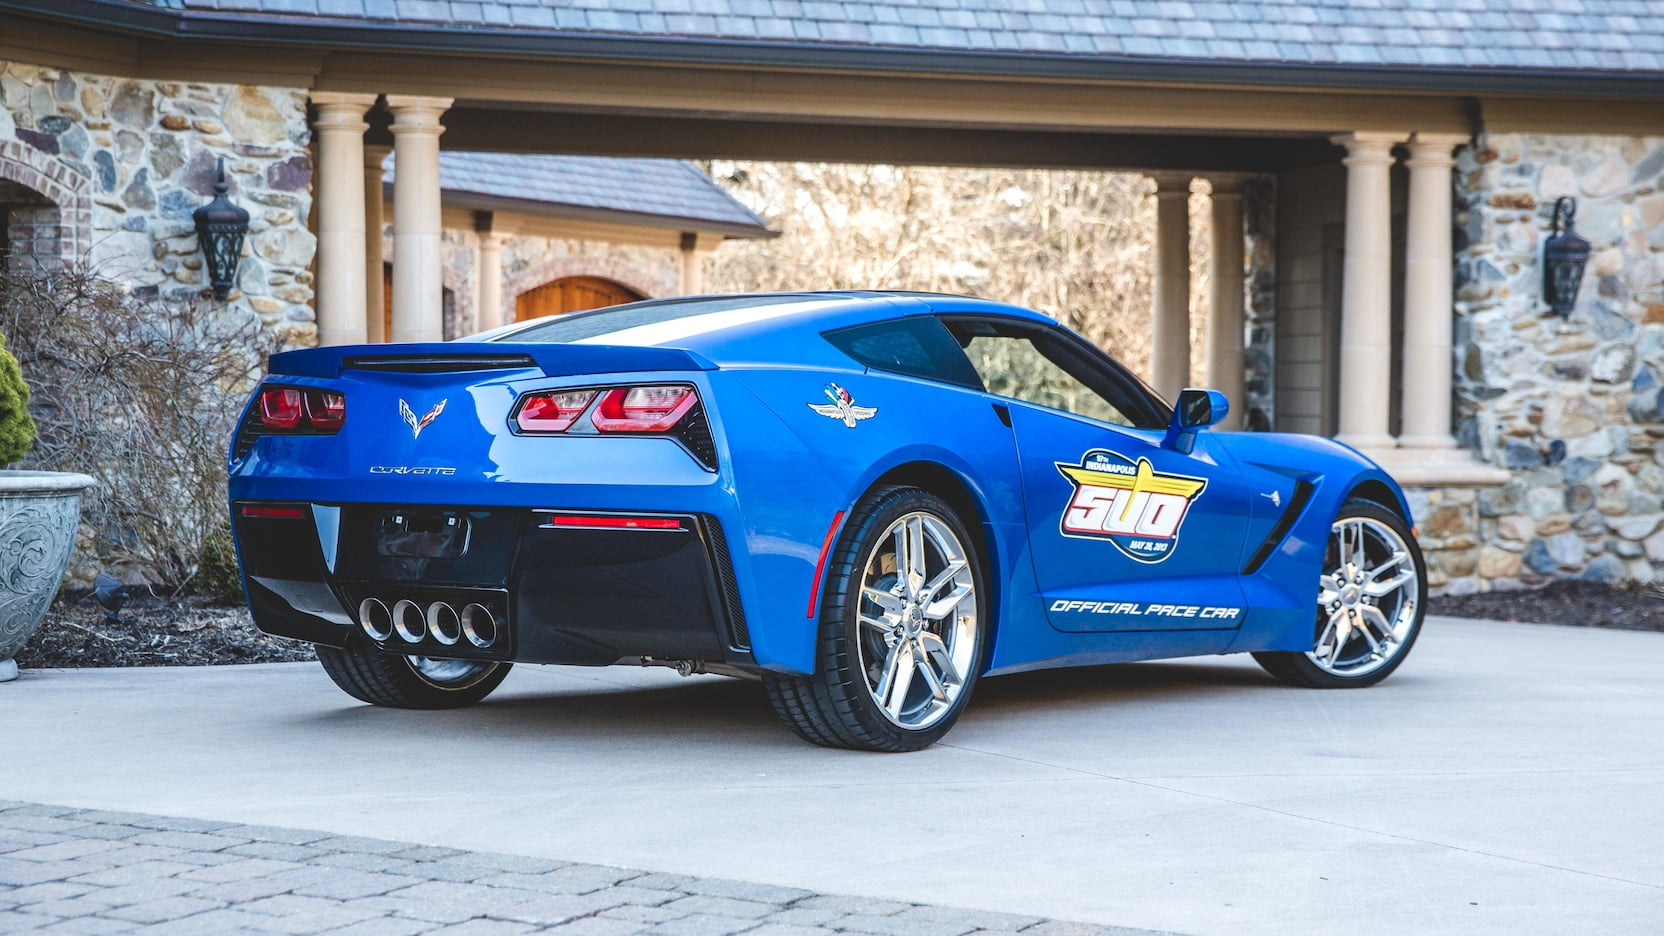 2014 Chevrolet Corvette Pace Car Edition Rear 3/4